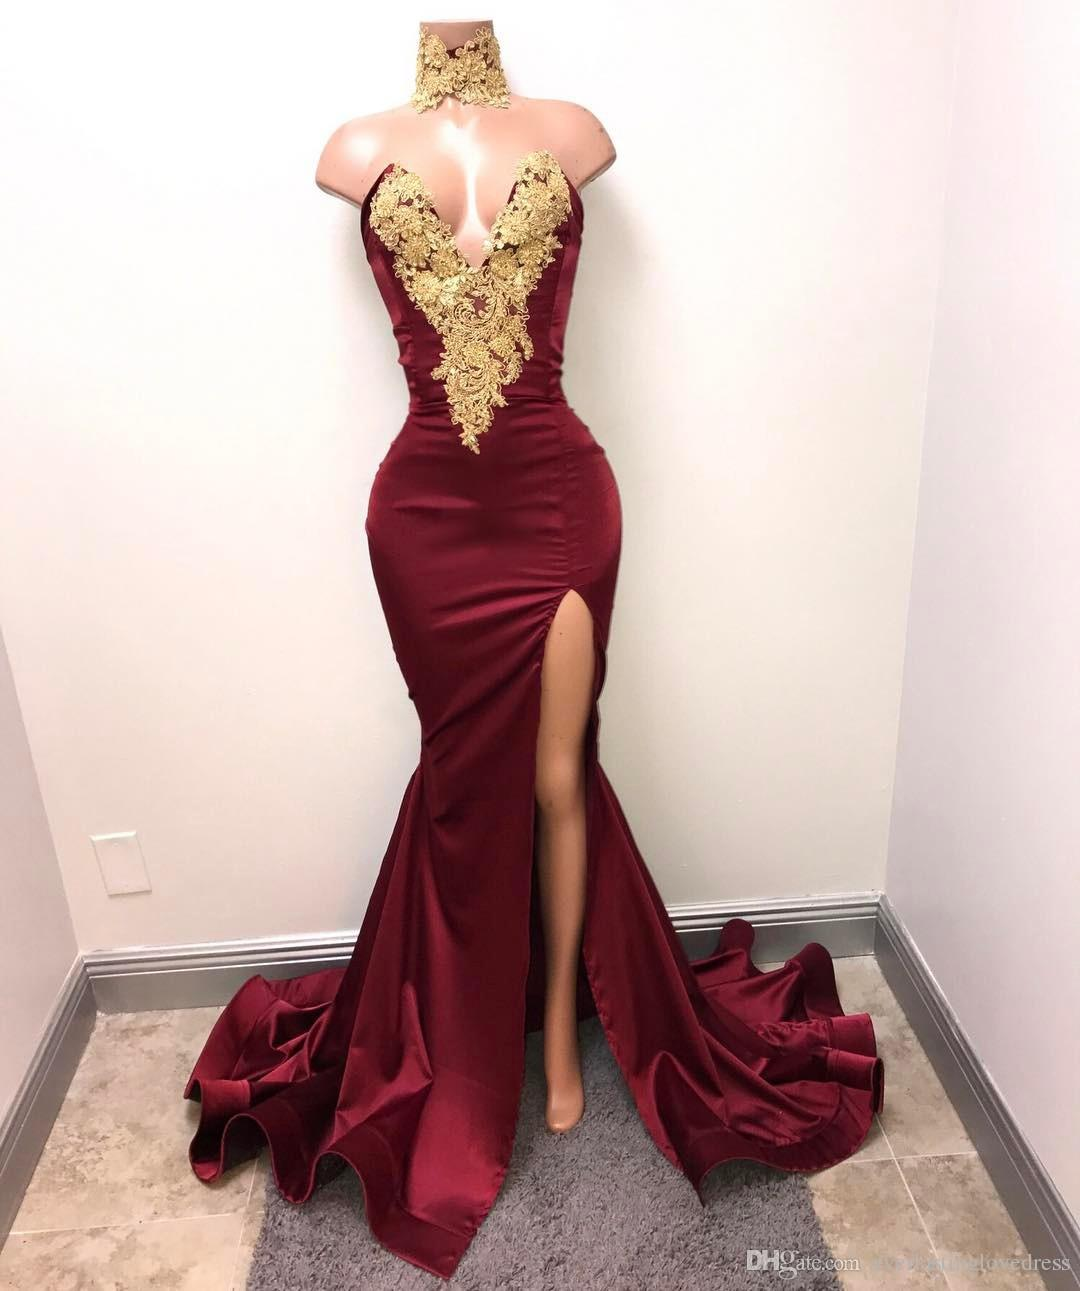 Hot Sale Burgundy Mermaid Prom Dress Lace Appliques Sexy Slit Deep V-Neck Evening Gowns Formal Dresses